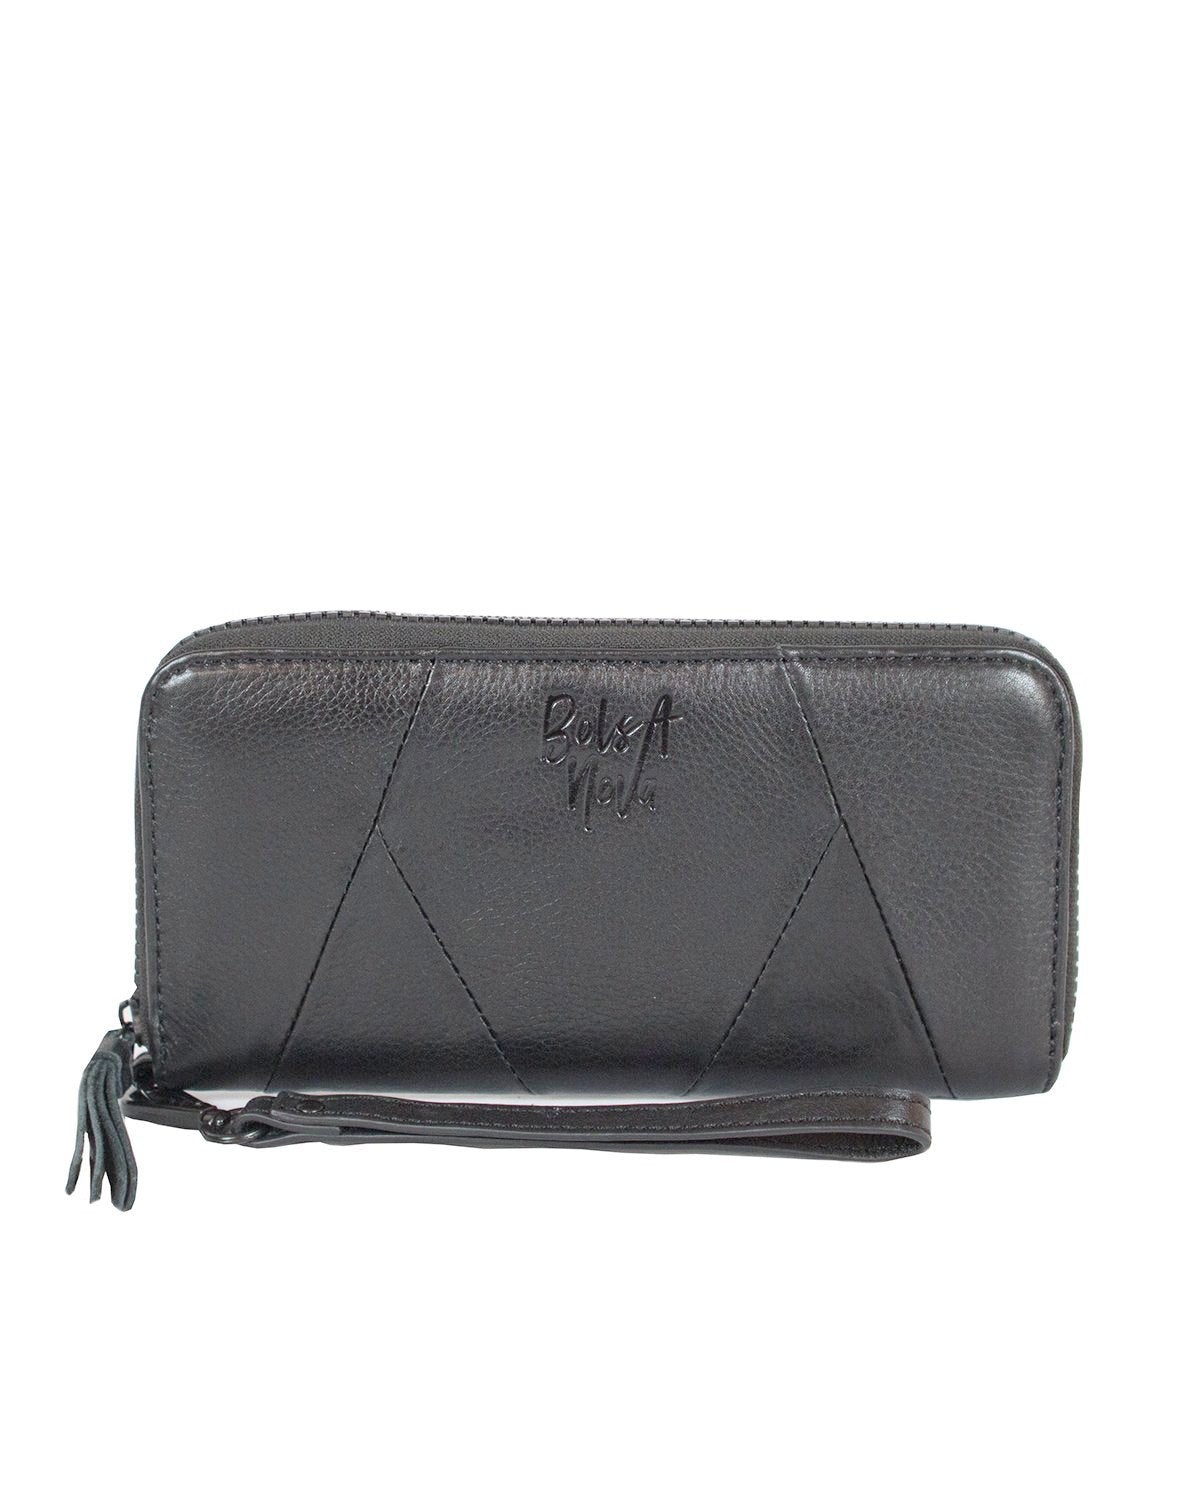 Bolsa Nova wallet in black leather